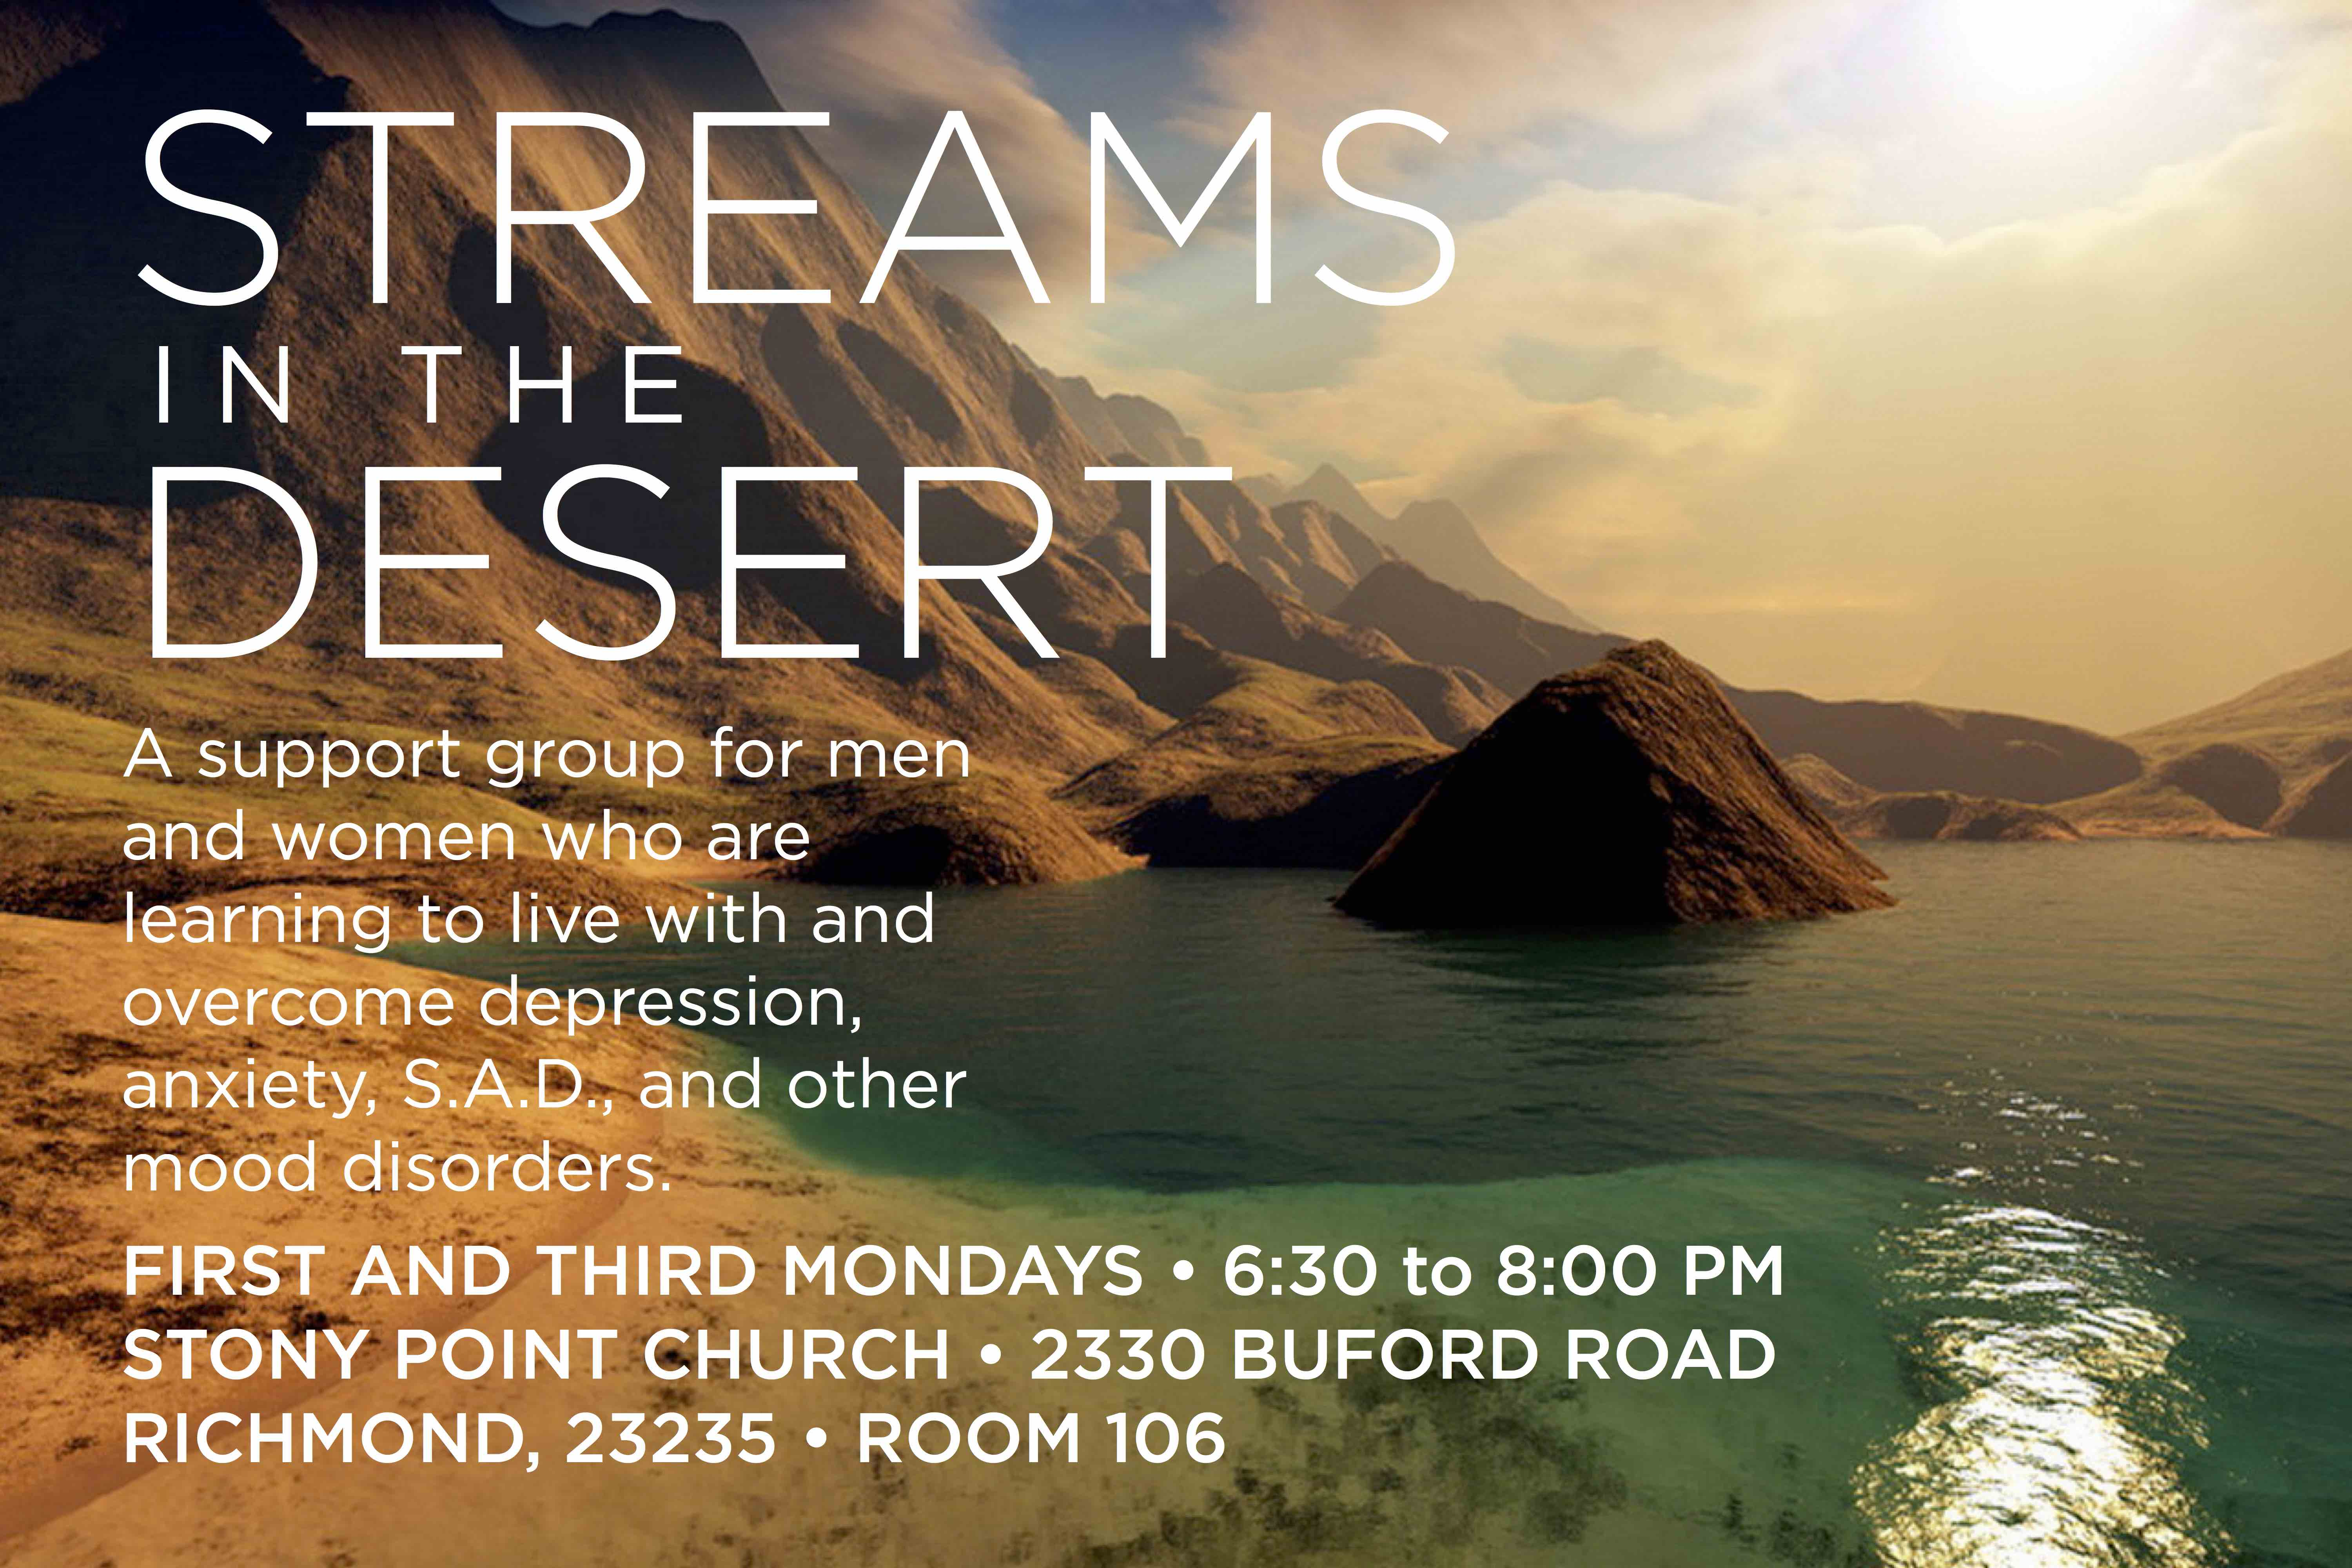 STEAMS IN THE DESERT SUPPORT GROUP BEGINS